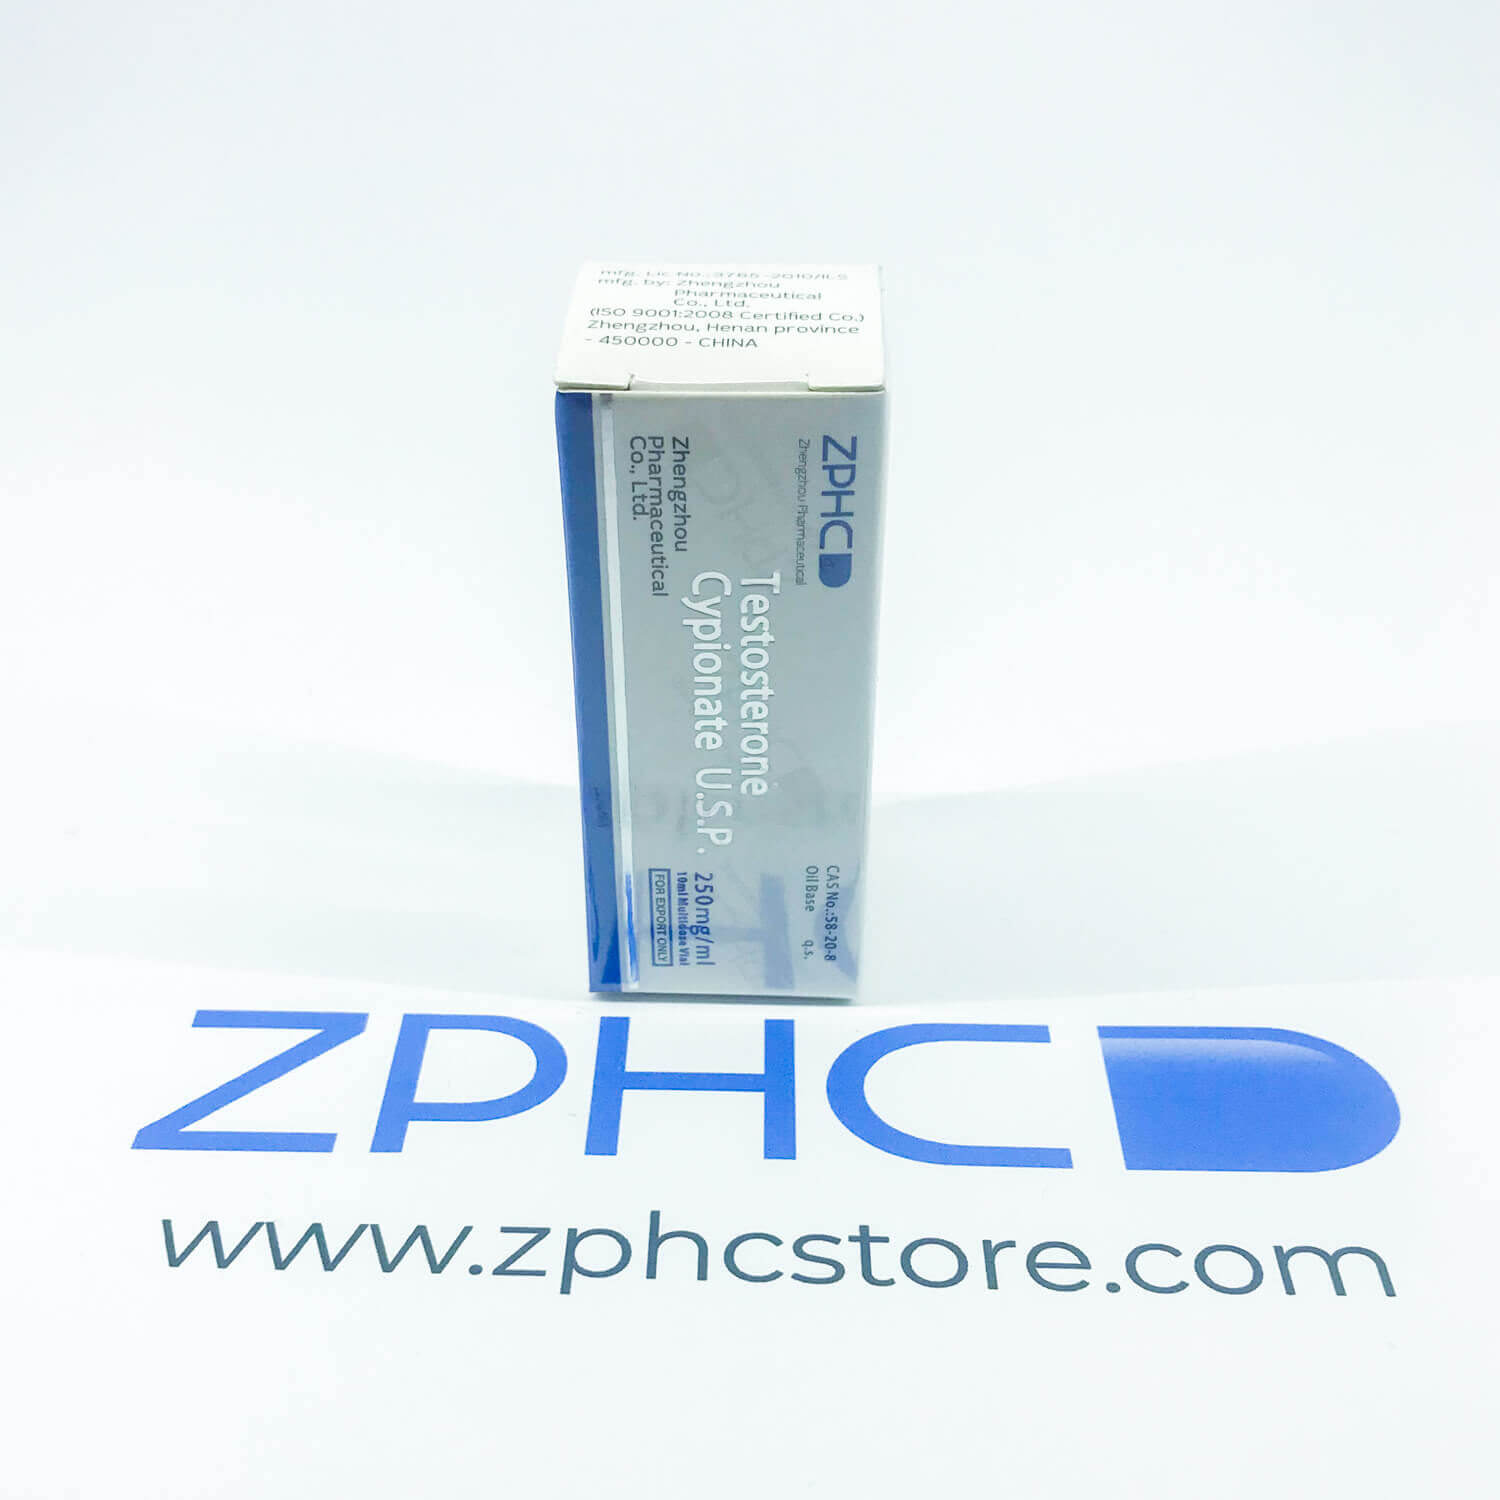 Testosterone Cypionate, Test C ZPHC zphcstore.com